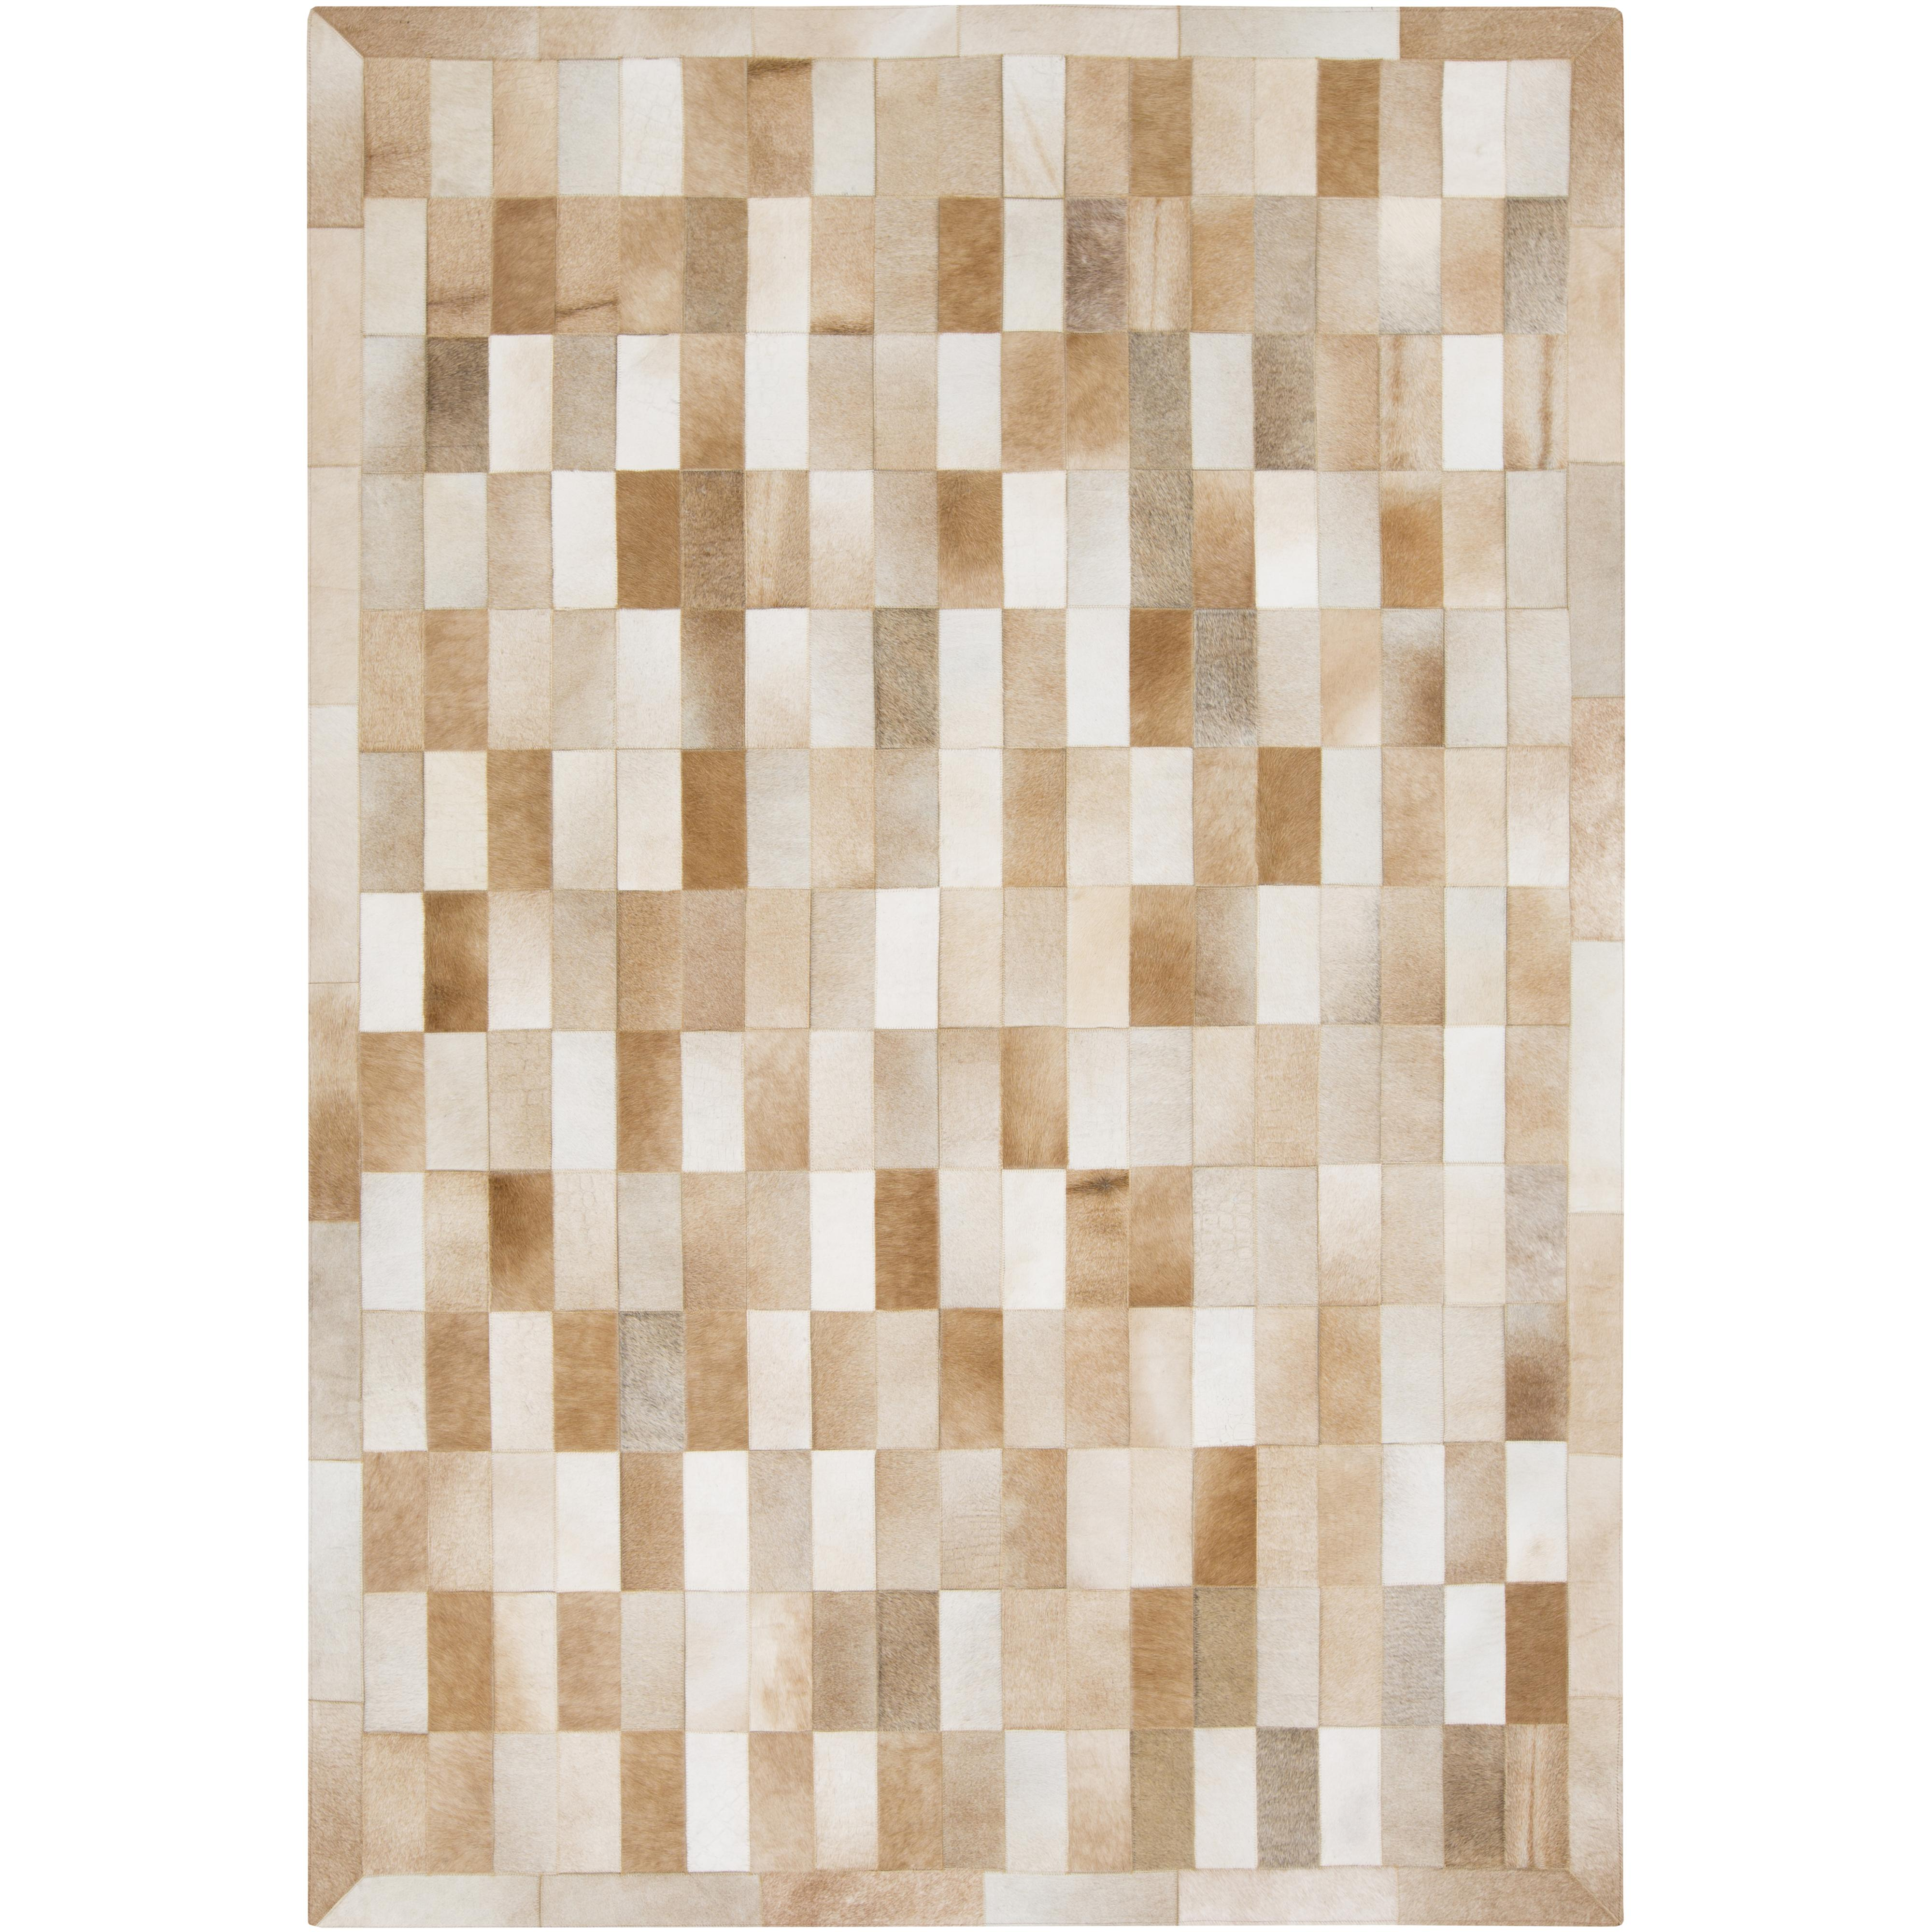 Outback 2' x 3' by Ruby-Gordon Accents at Ruby Gordon Home